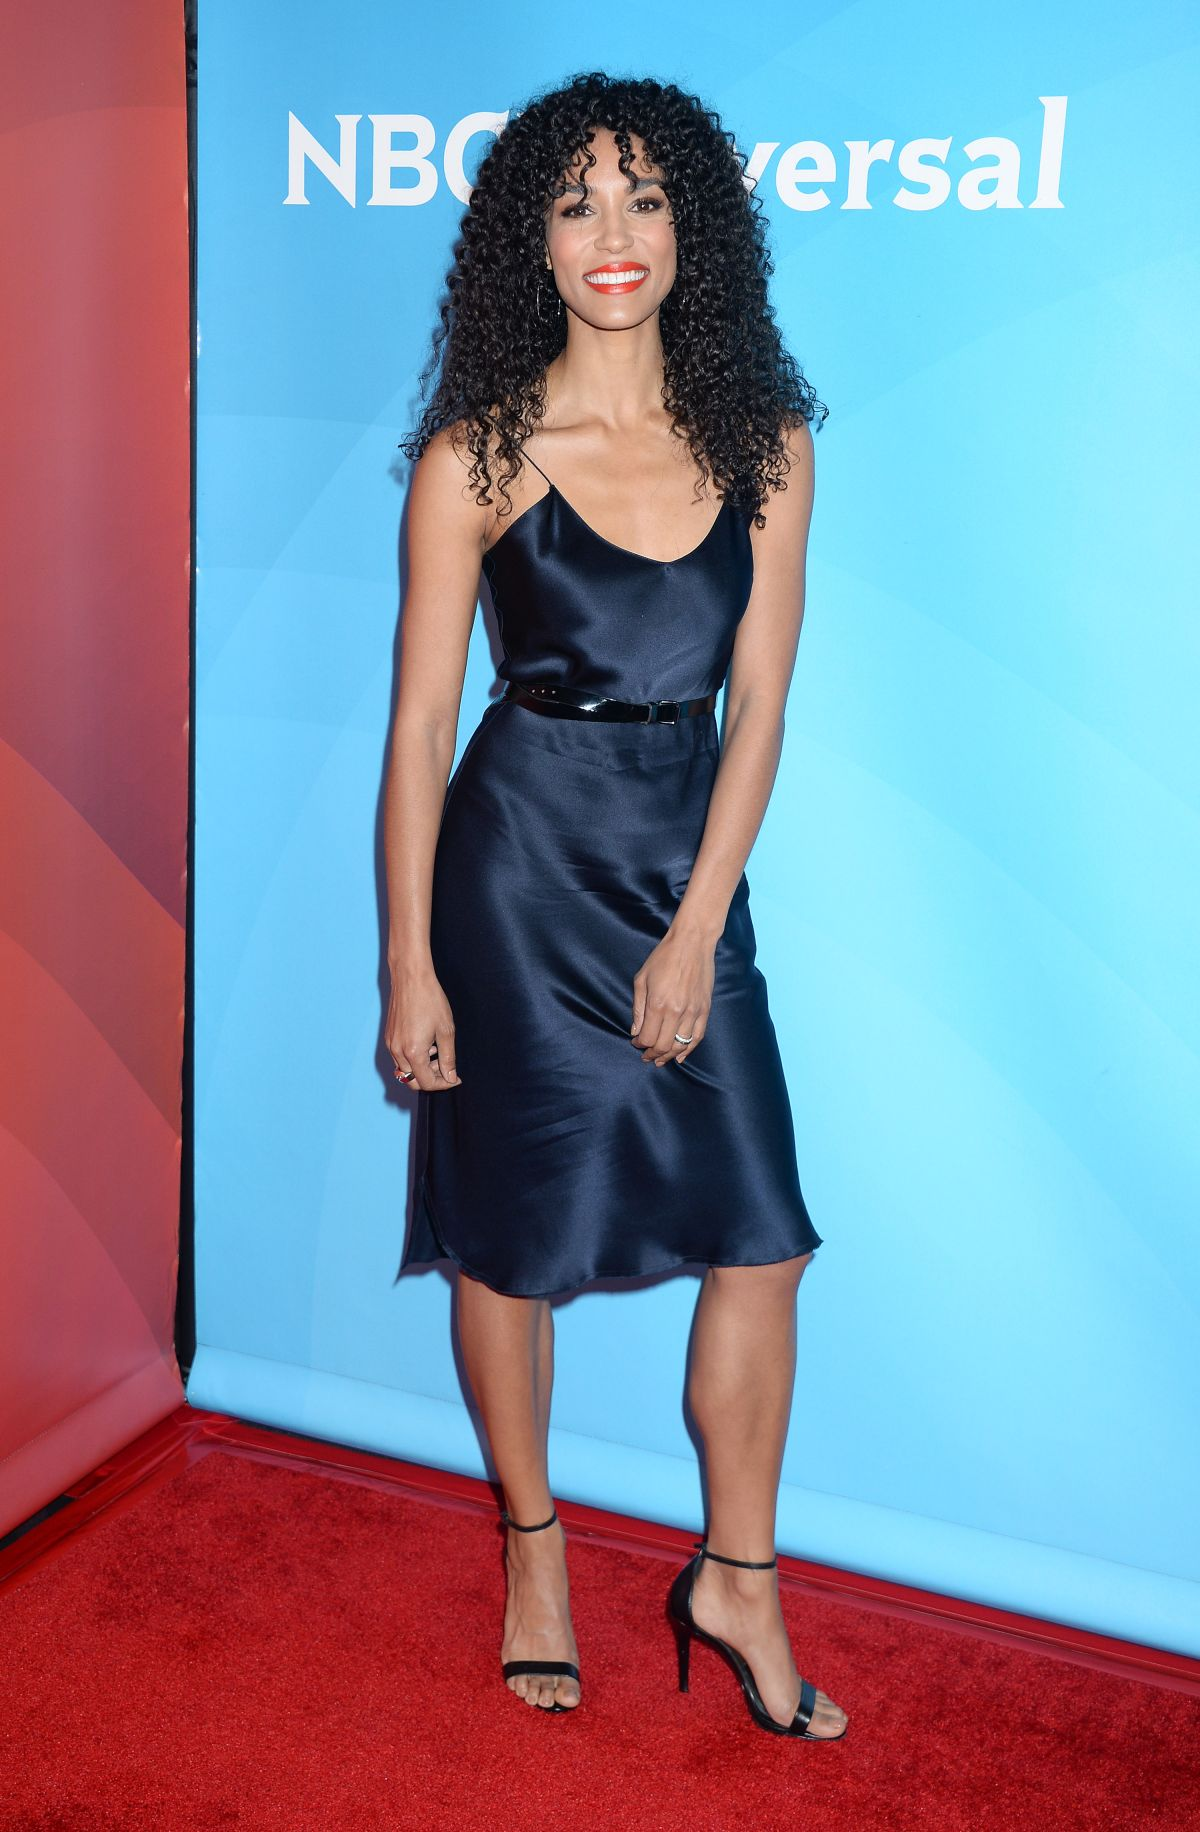 380694974722554825 together with Oscarchavezromero furthermore CECYTEJ OFICIAL moreover Geografia 5 moreover Brooklyn Sudano Nbcuniversal Summer Press Day Beverly Hills 03202017. on osacr romero